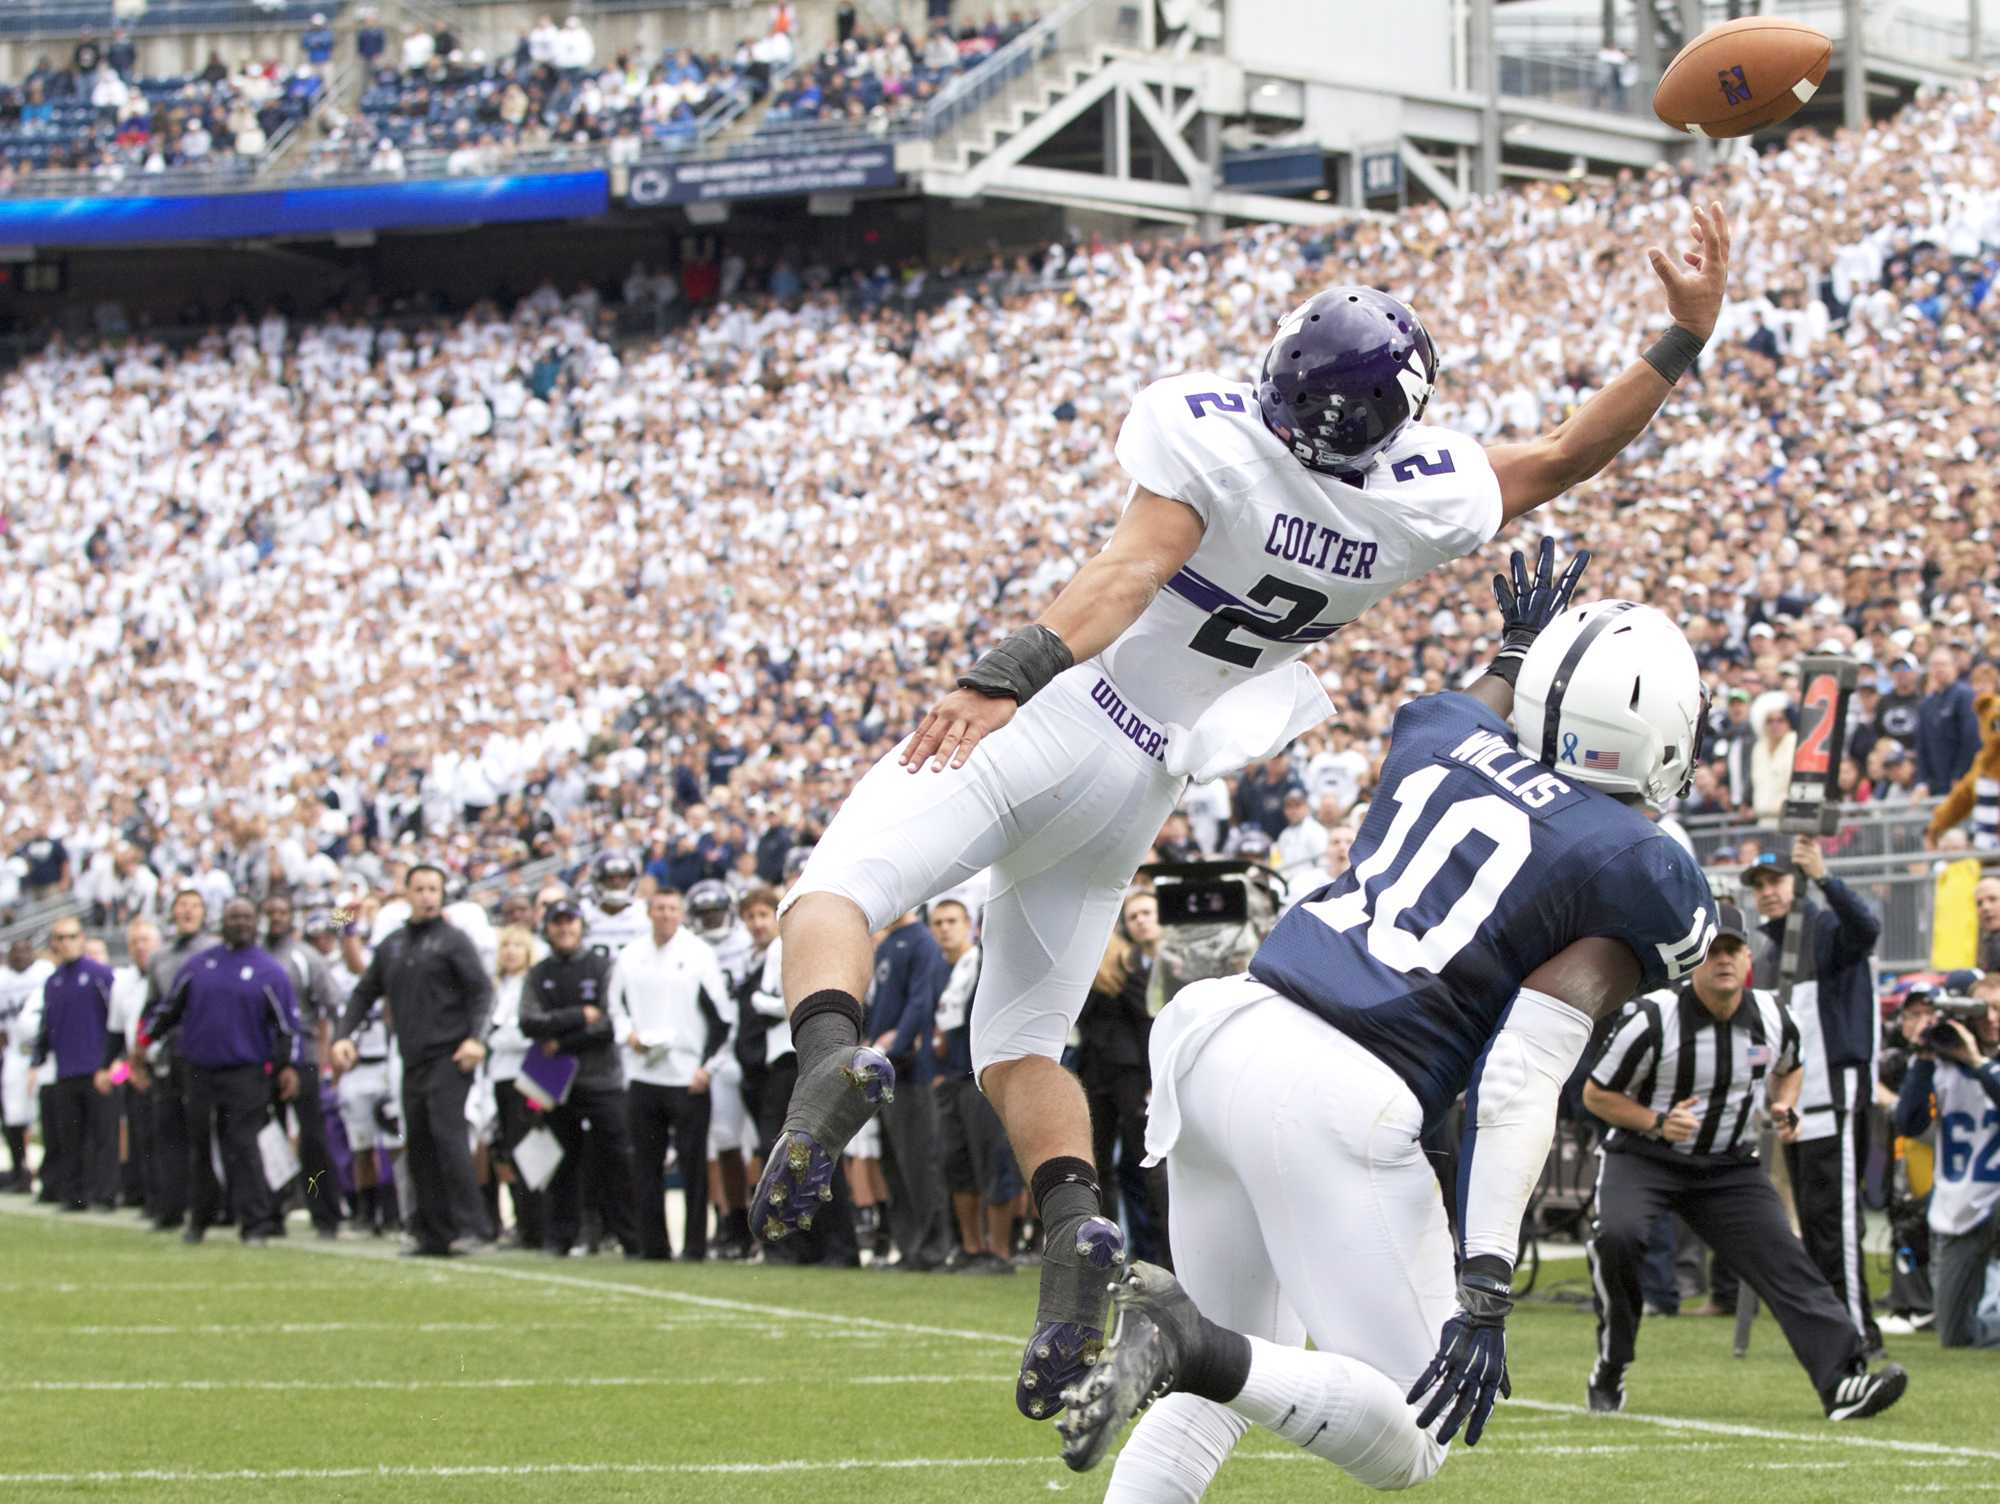 Northwestern quarterback Kain Colter reaches for a pass in the endzone. Colter finished the Saturday's game against Penn State with only three catches for 17 yards.